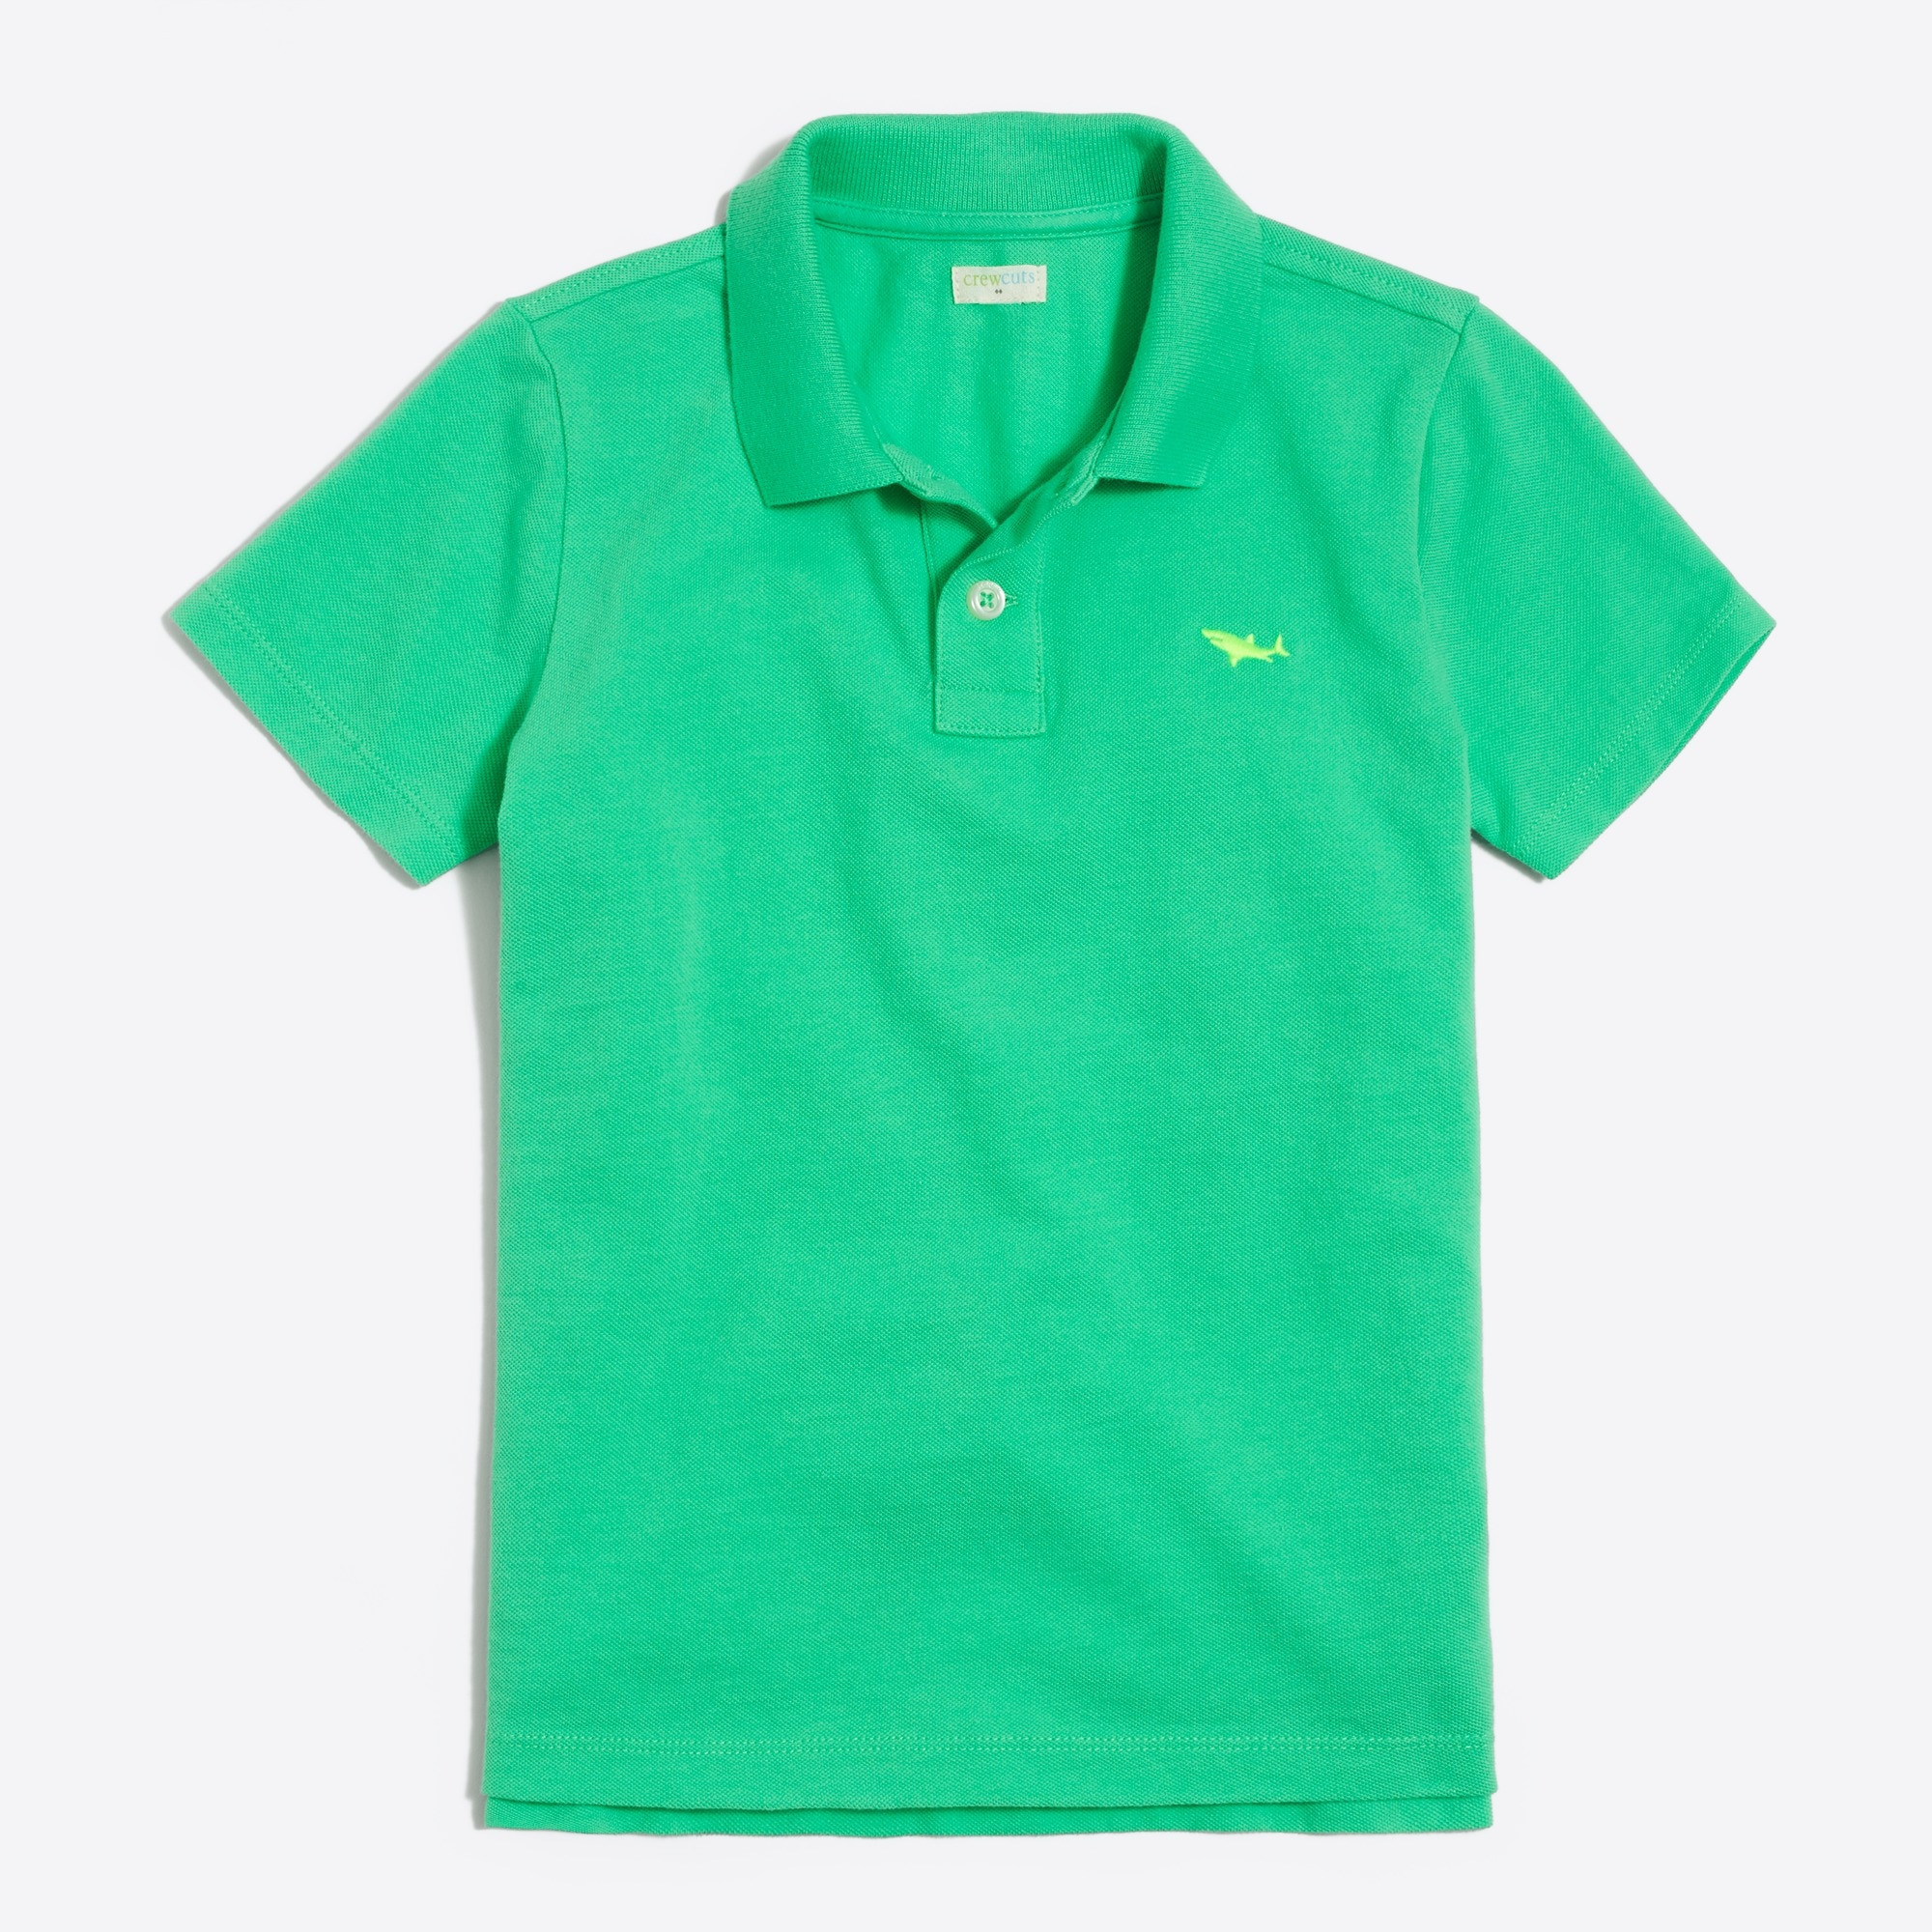 Boys' critter piqué polo shirt factoryboys knits & t-shirts c